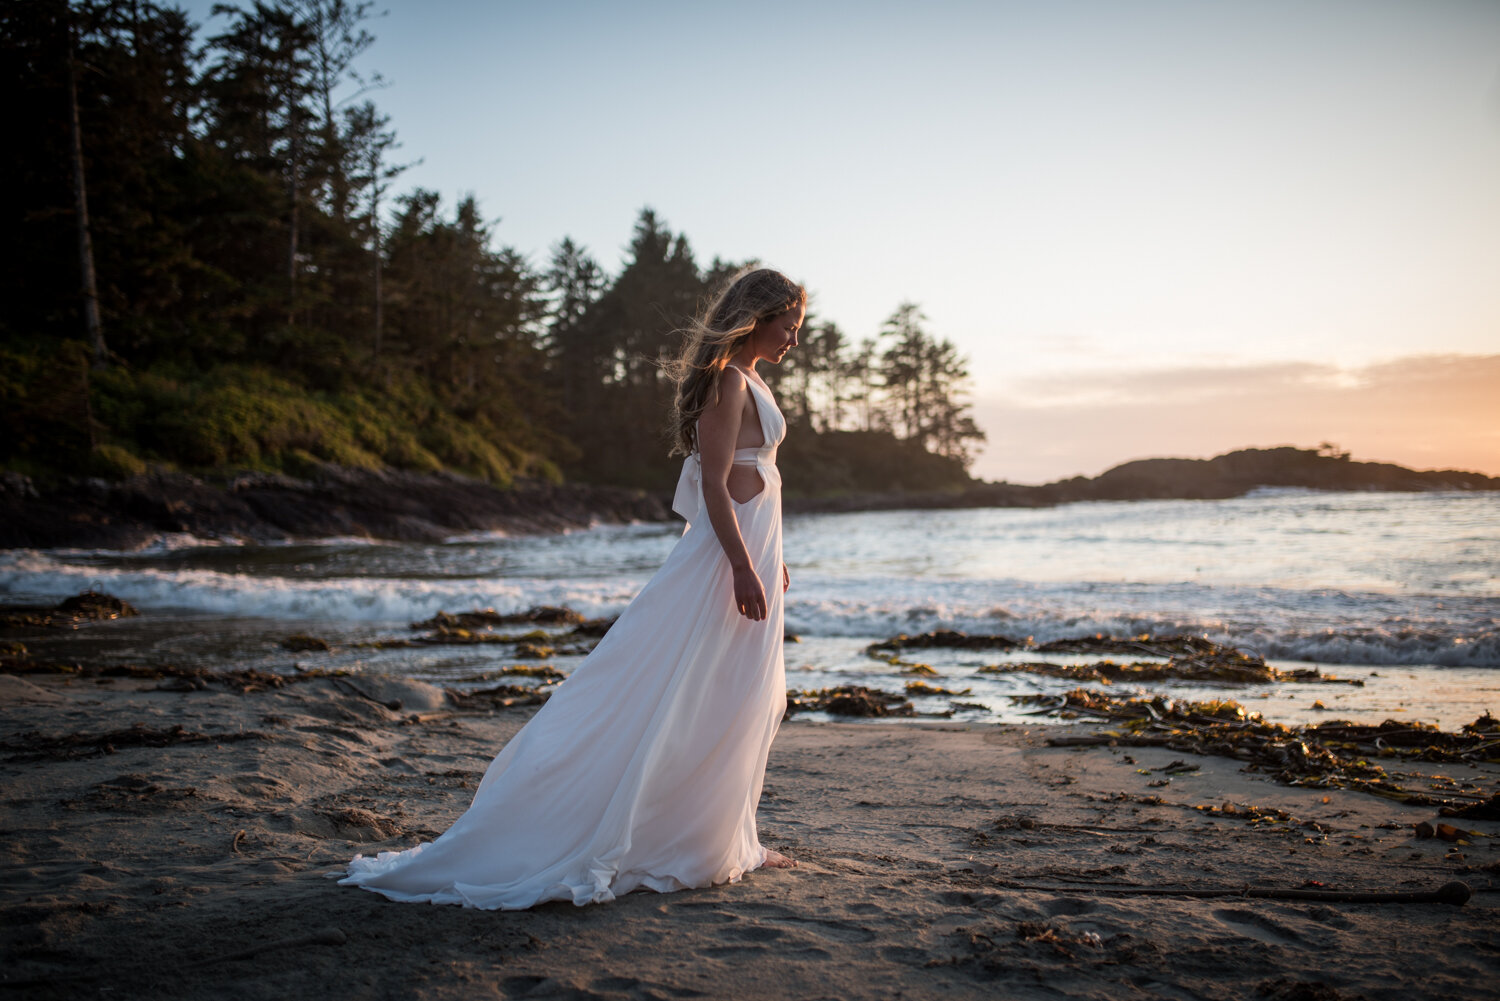 Ucluelet-Wya-Point-Wedding-Owen-Imaging-61.jpg